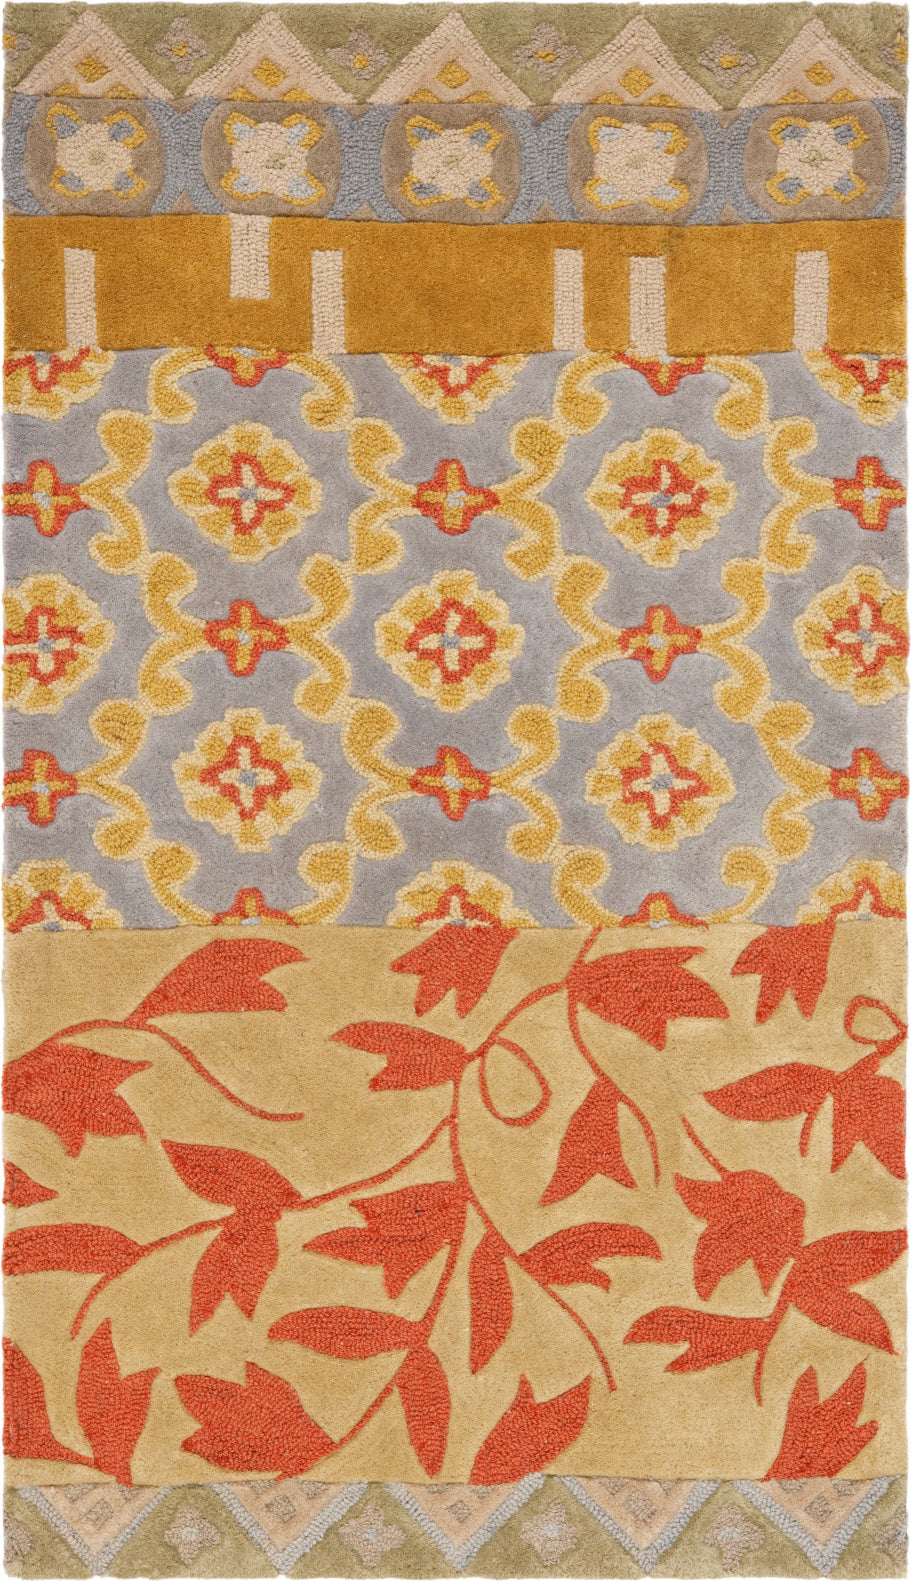 Safavieh Rodeo Drive Rd622 Multi Area Rug main image